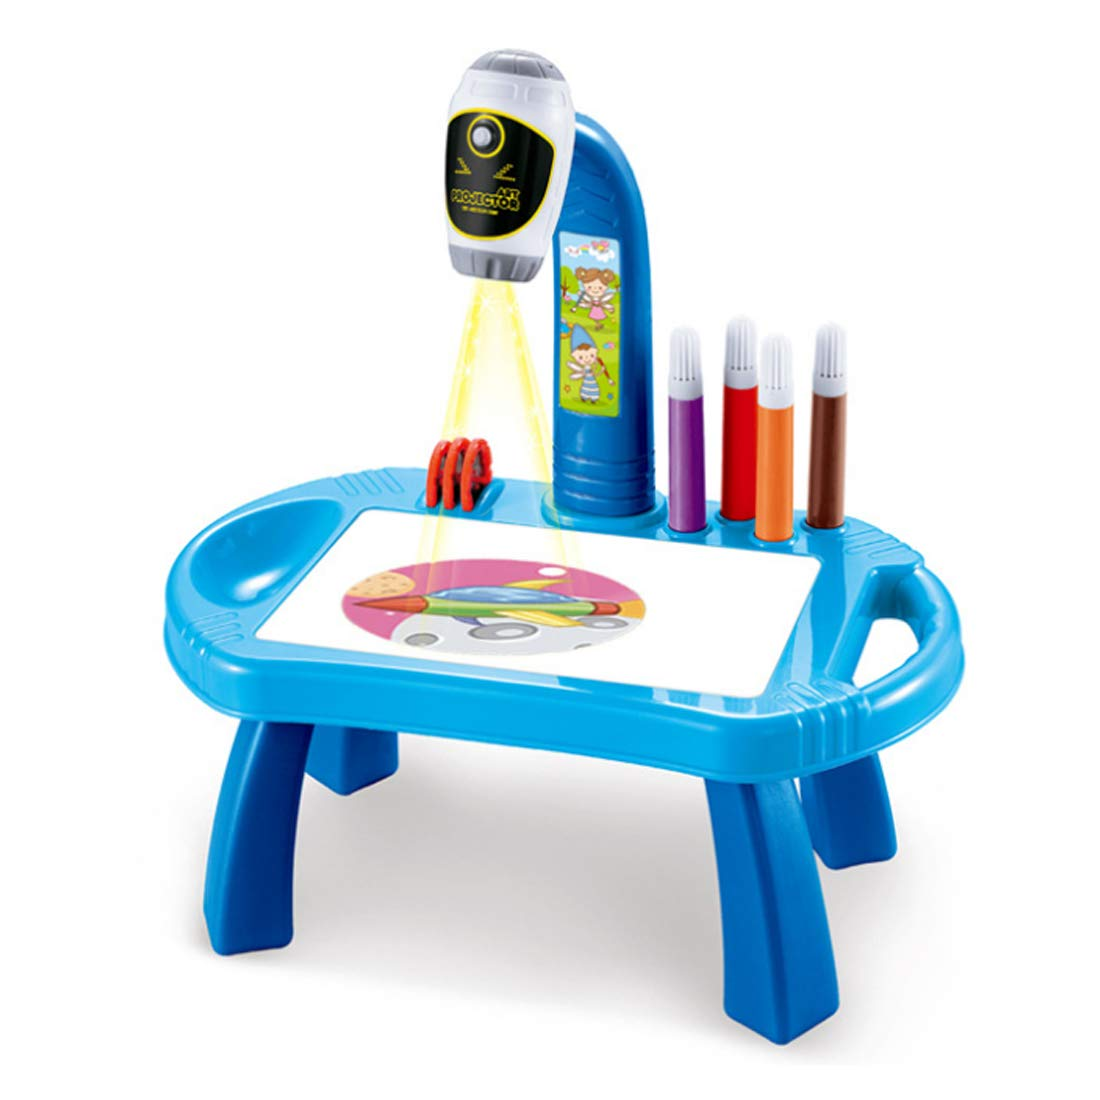 22925c48f038 Amazon.com  WOLFBUSH Drawing Projector Painting Desk with 32 Patterns  Adjustable Art Projector Educational Toy for Children 2 Years Old and up  (Blue)  Toys ...